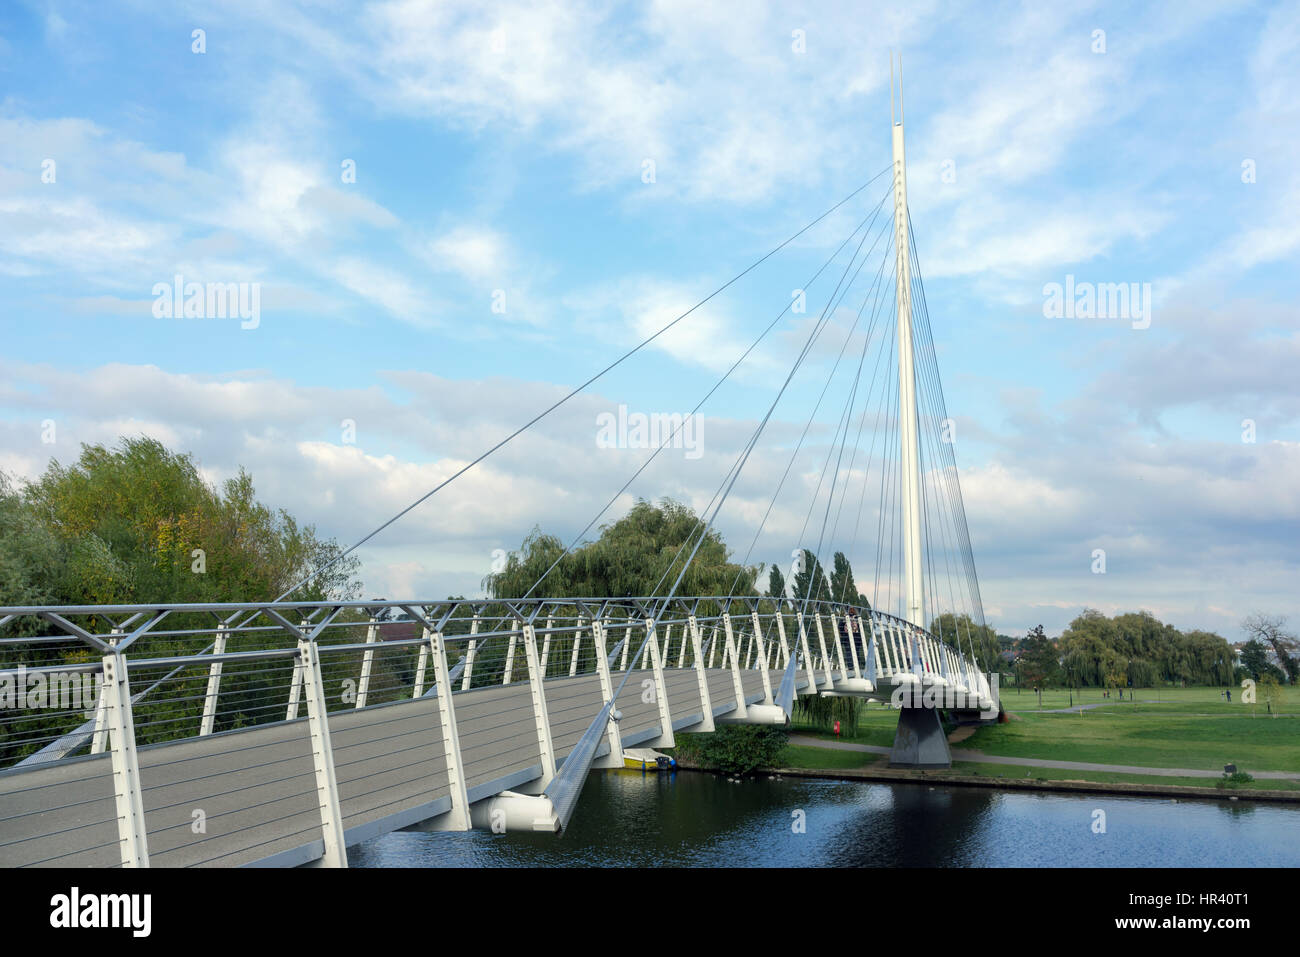 Christchurch Bridge over the River Thames in Reading, Berkshire - Stock Image